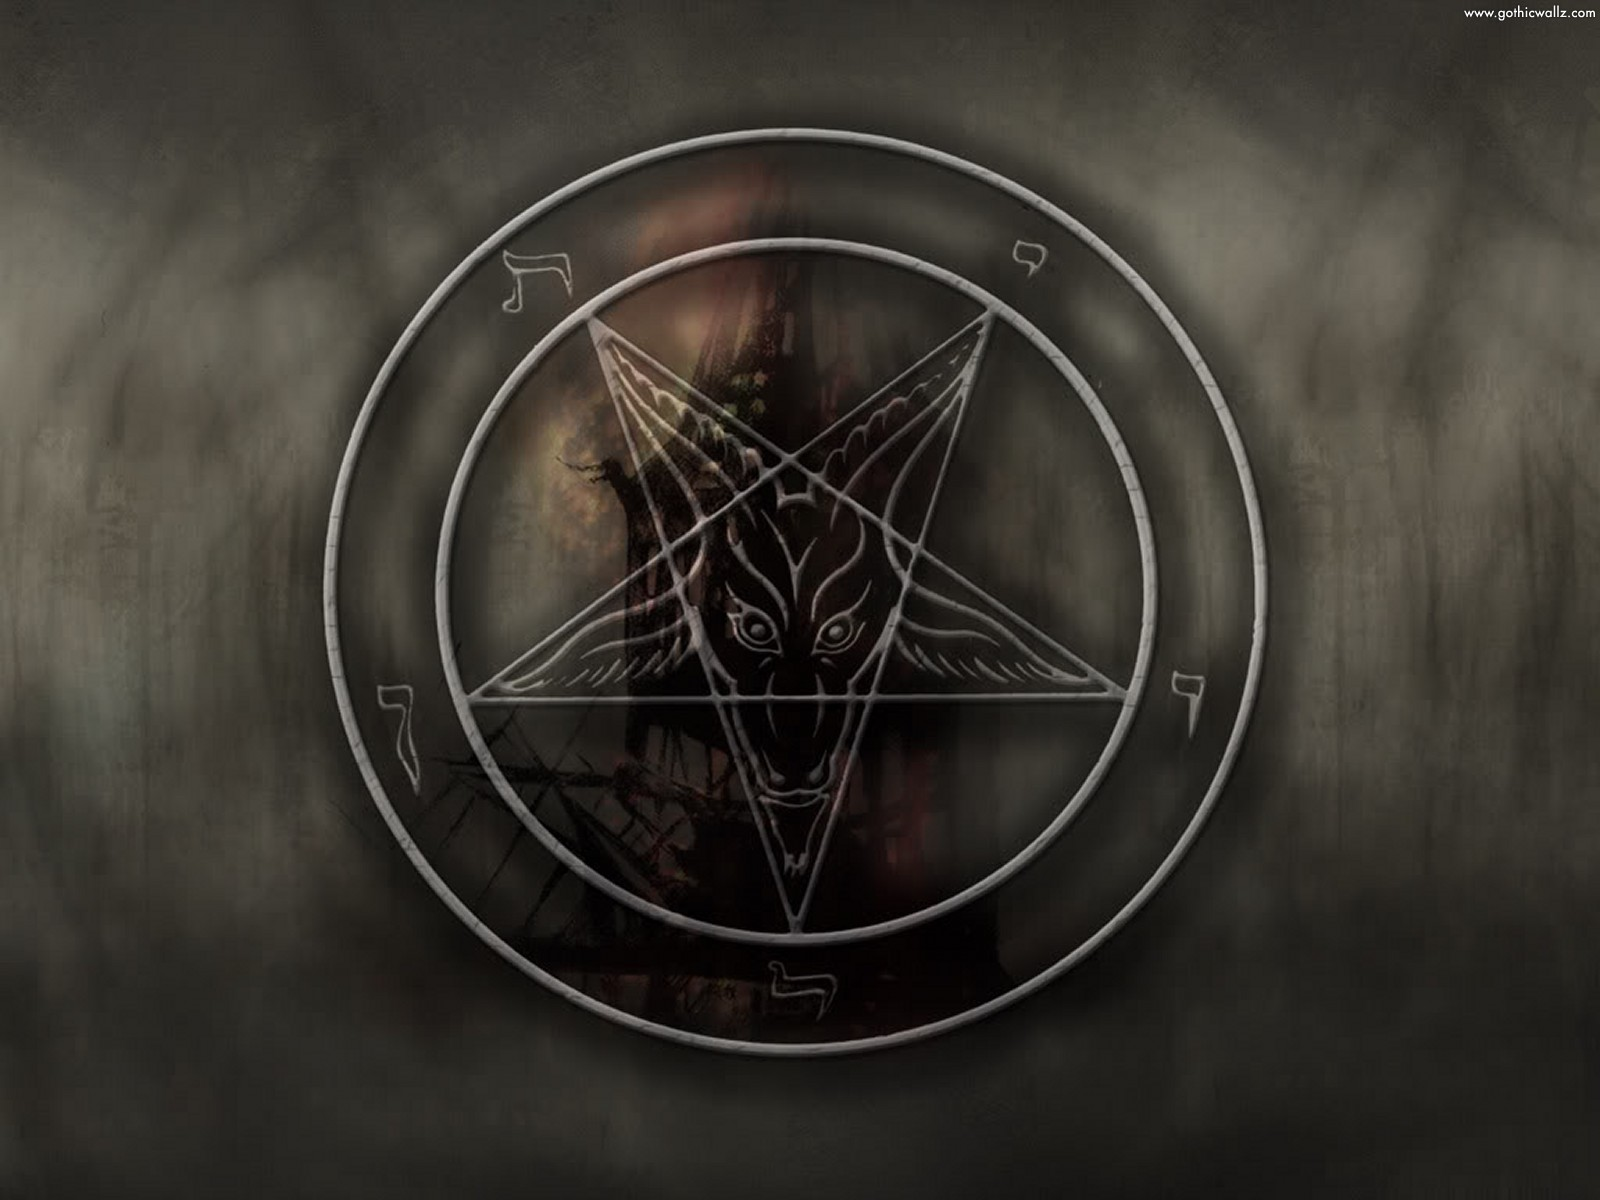 Devil Wallpaper | Gothic Wallpaper Download